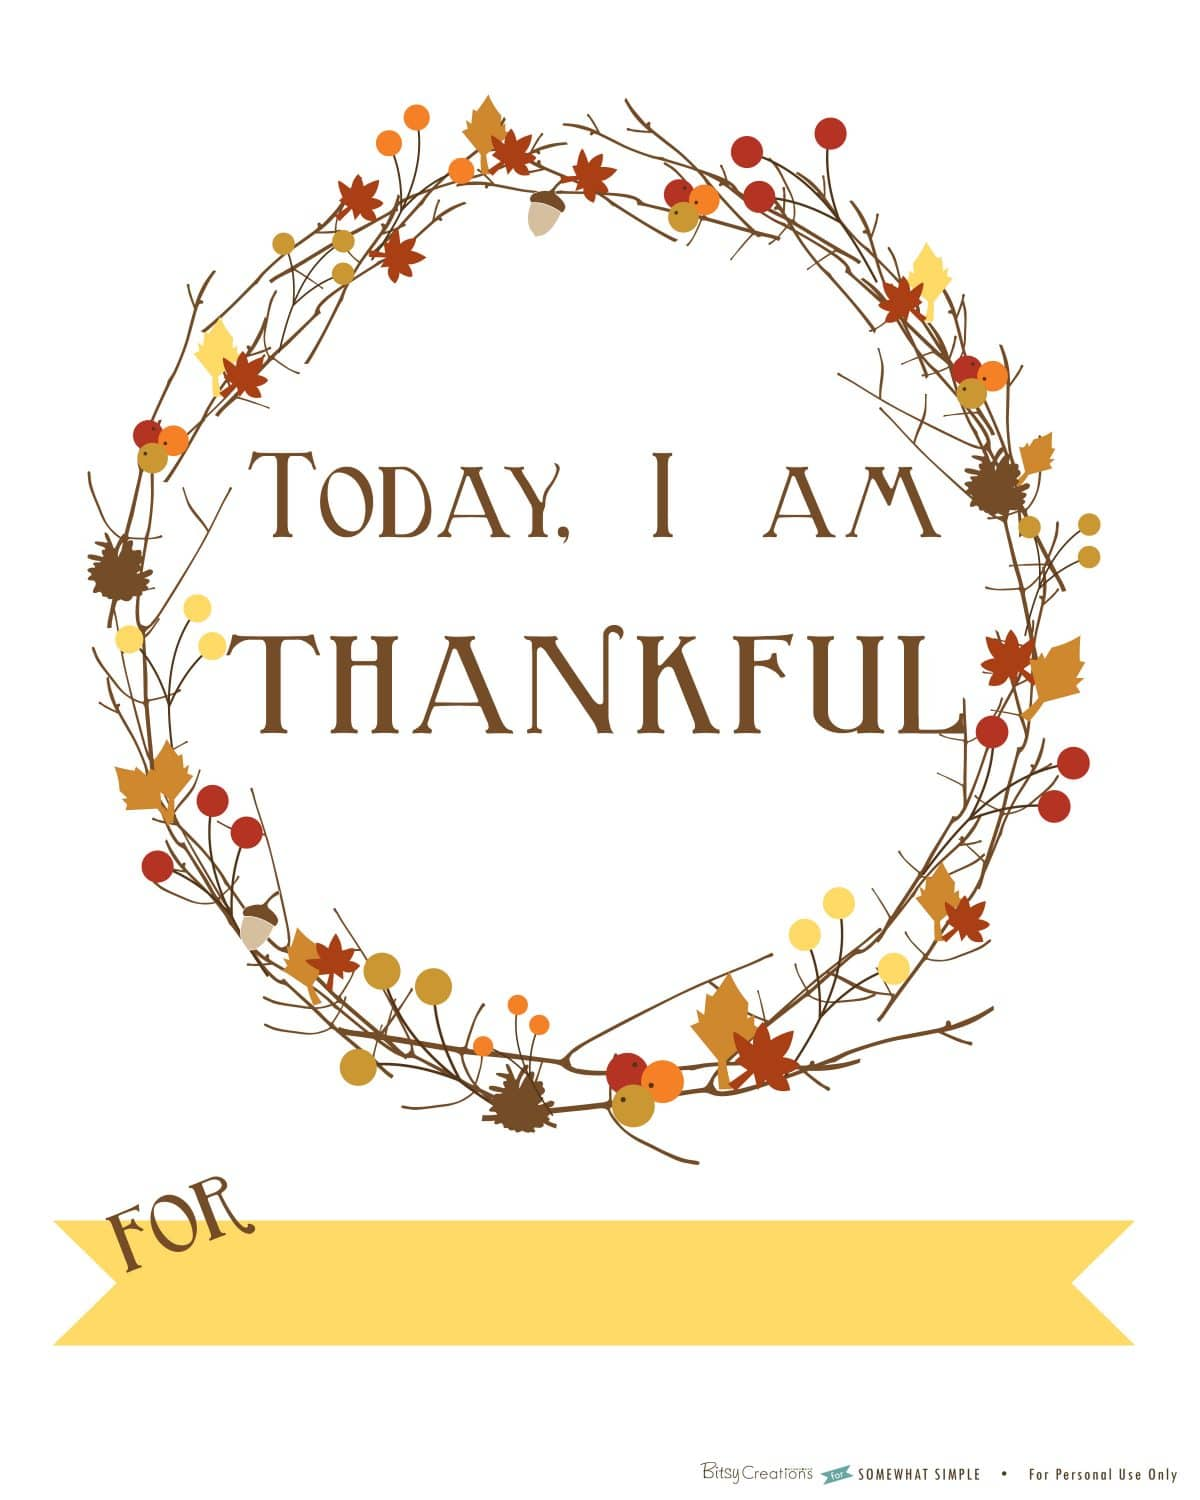 Divine image with regard to i am thankful for printable